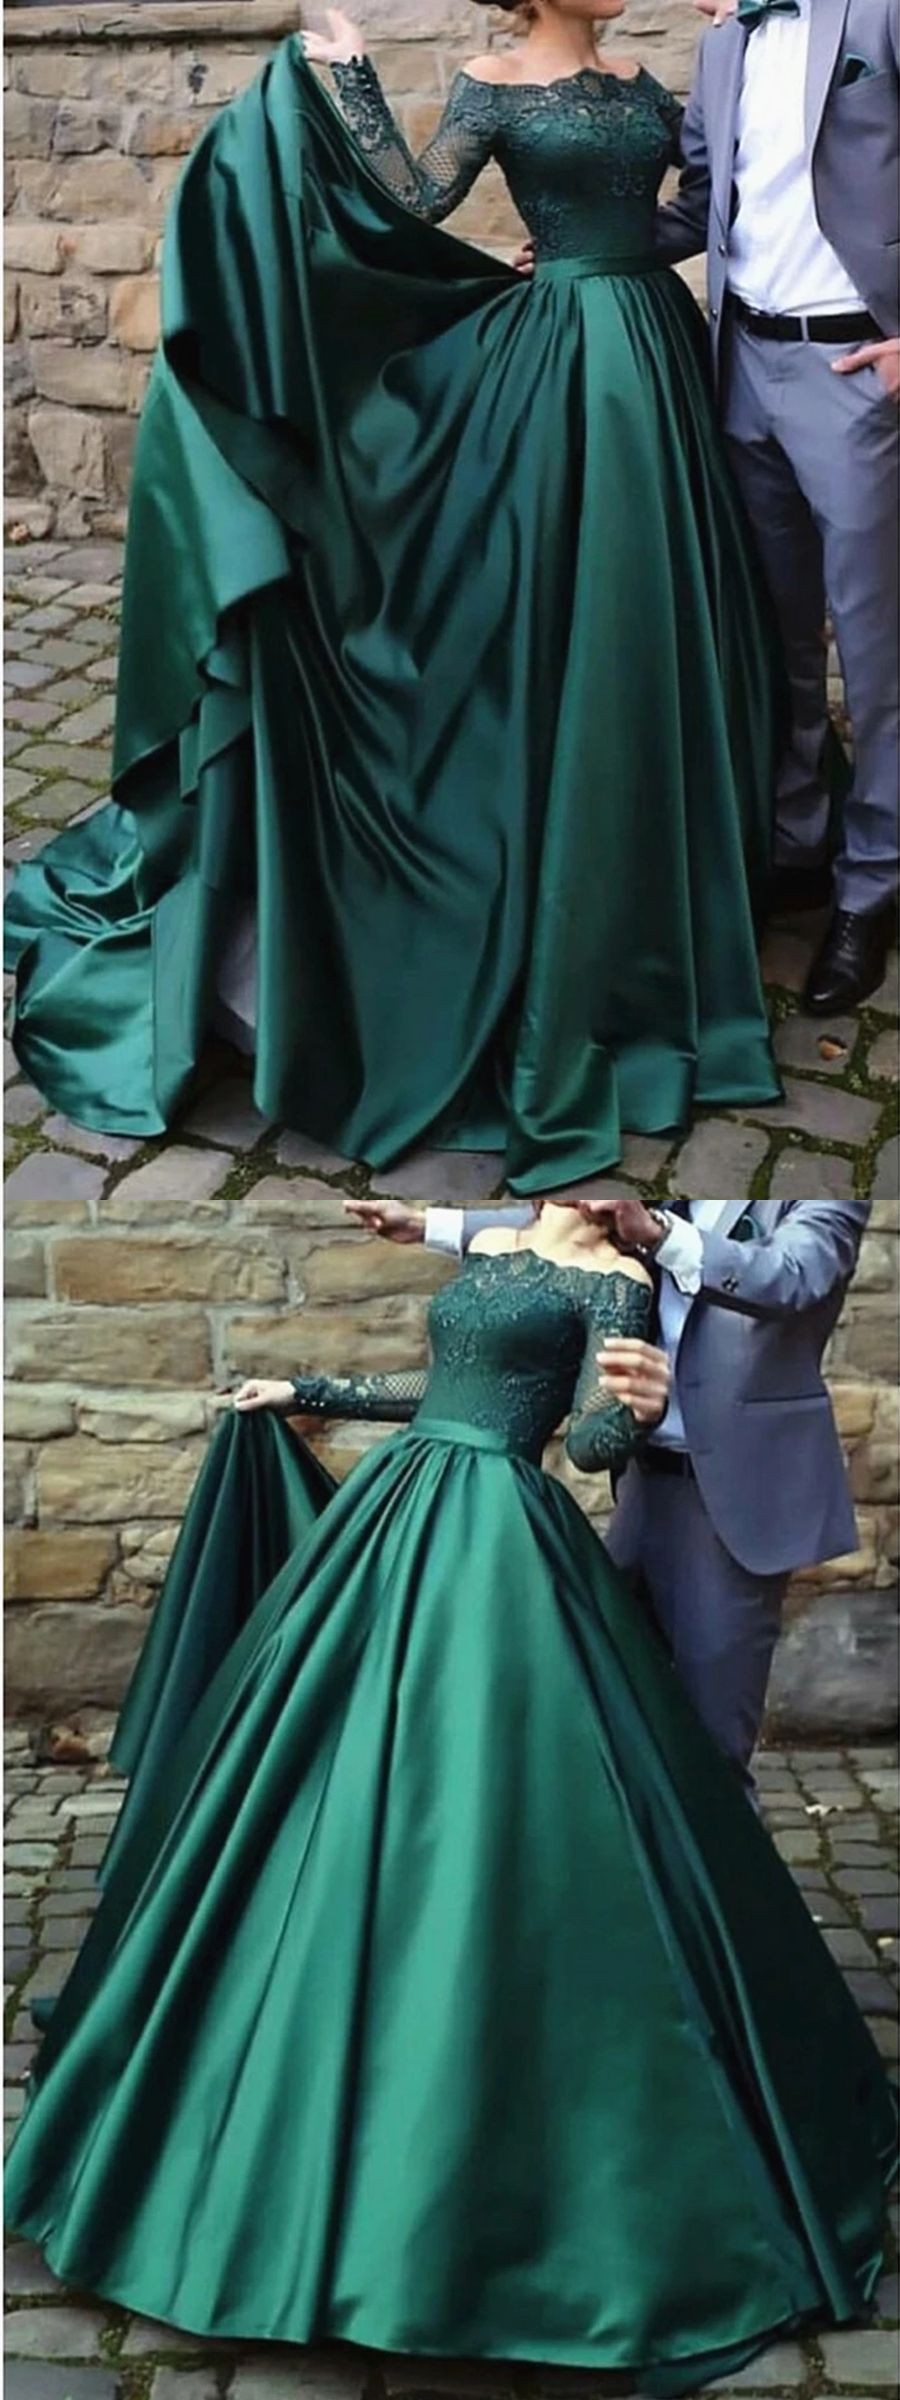 Click For Outfit Details Emerald Green Long Sleeve Floor Length Wrap Dress Black And Gold Geometric Pattern Eveni Maxi Dress Evening Guest Dresses Fashion [ 1635 x 736 Pixel ]